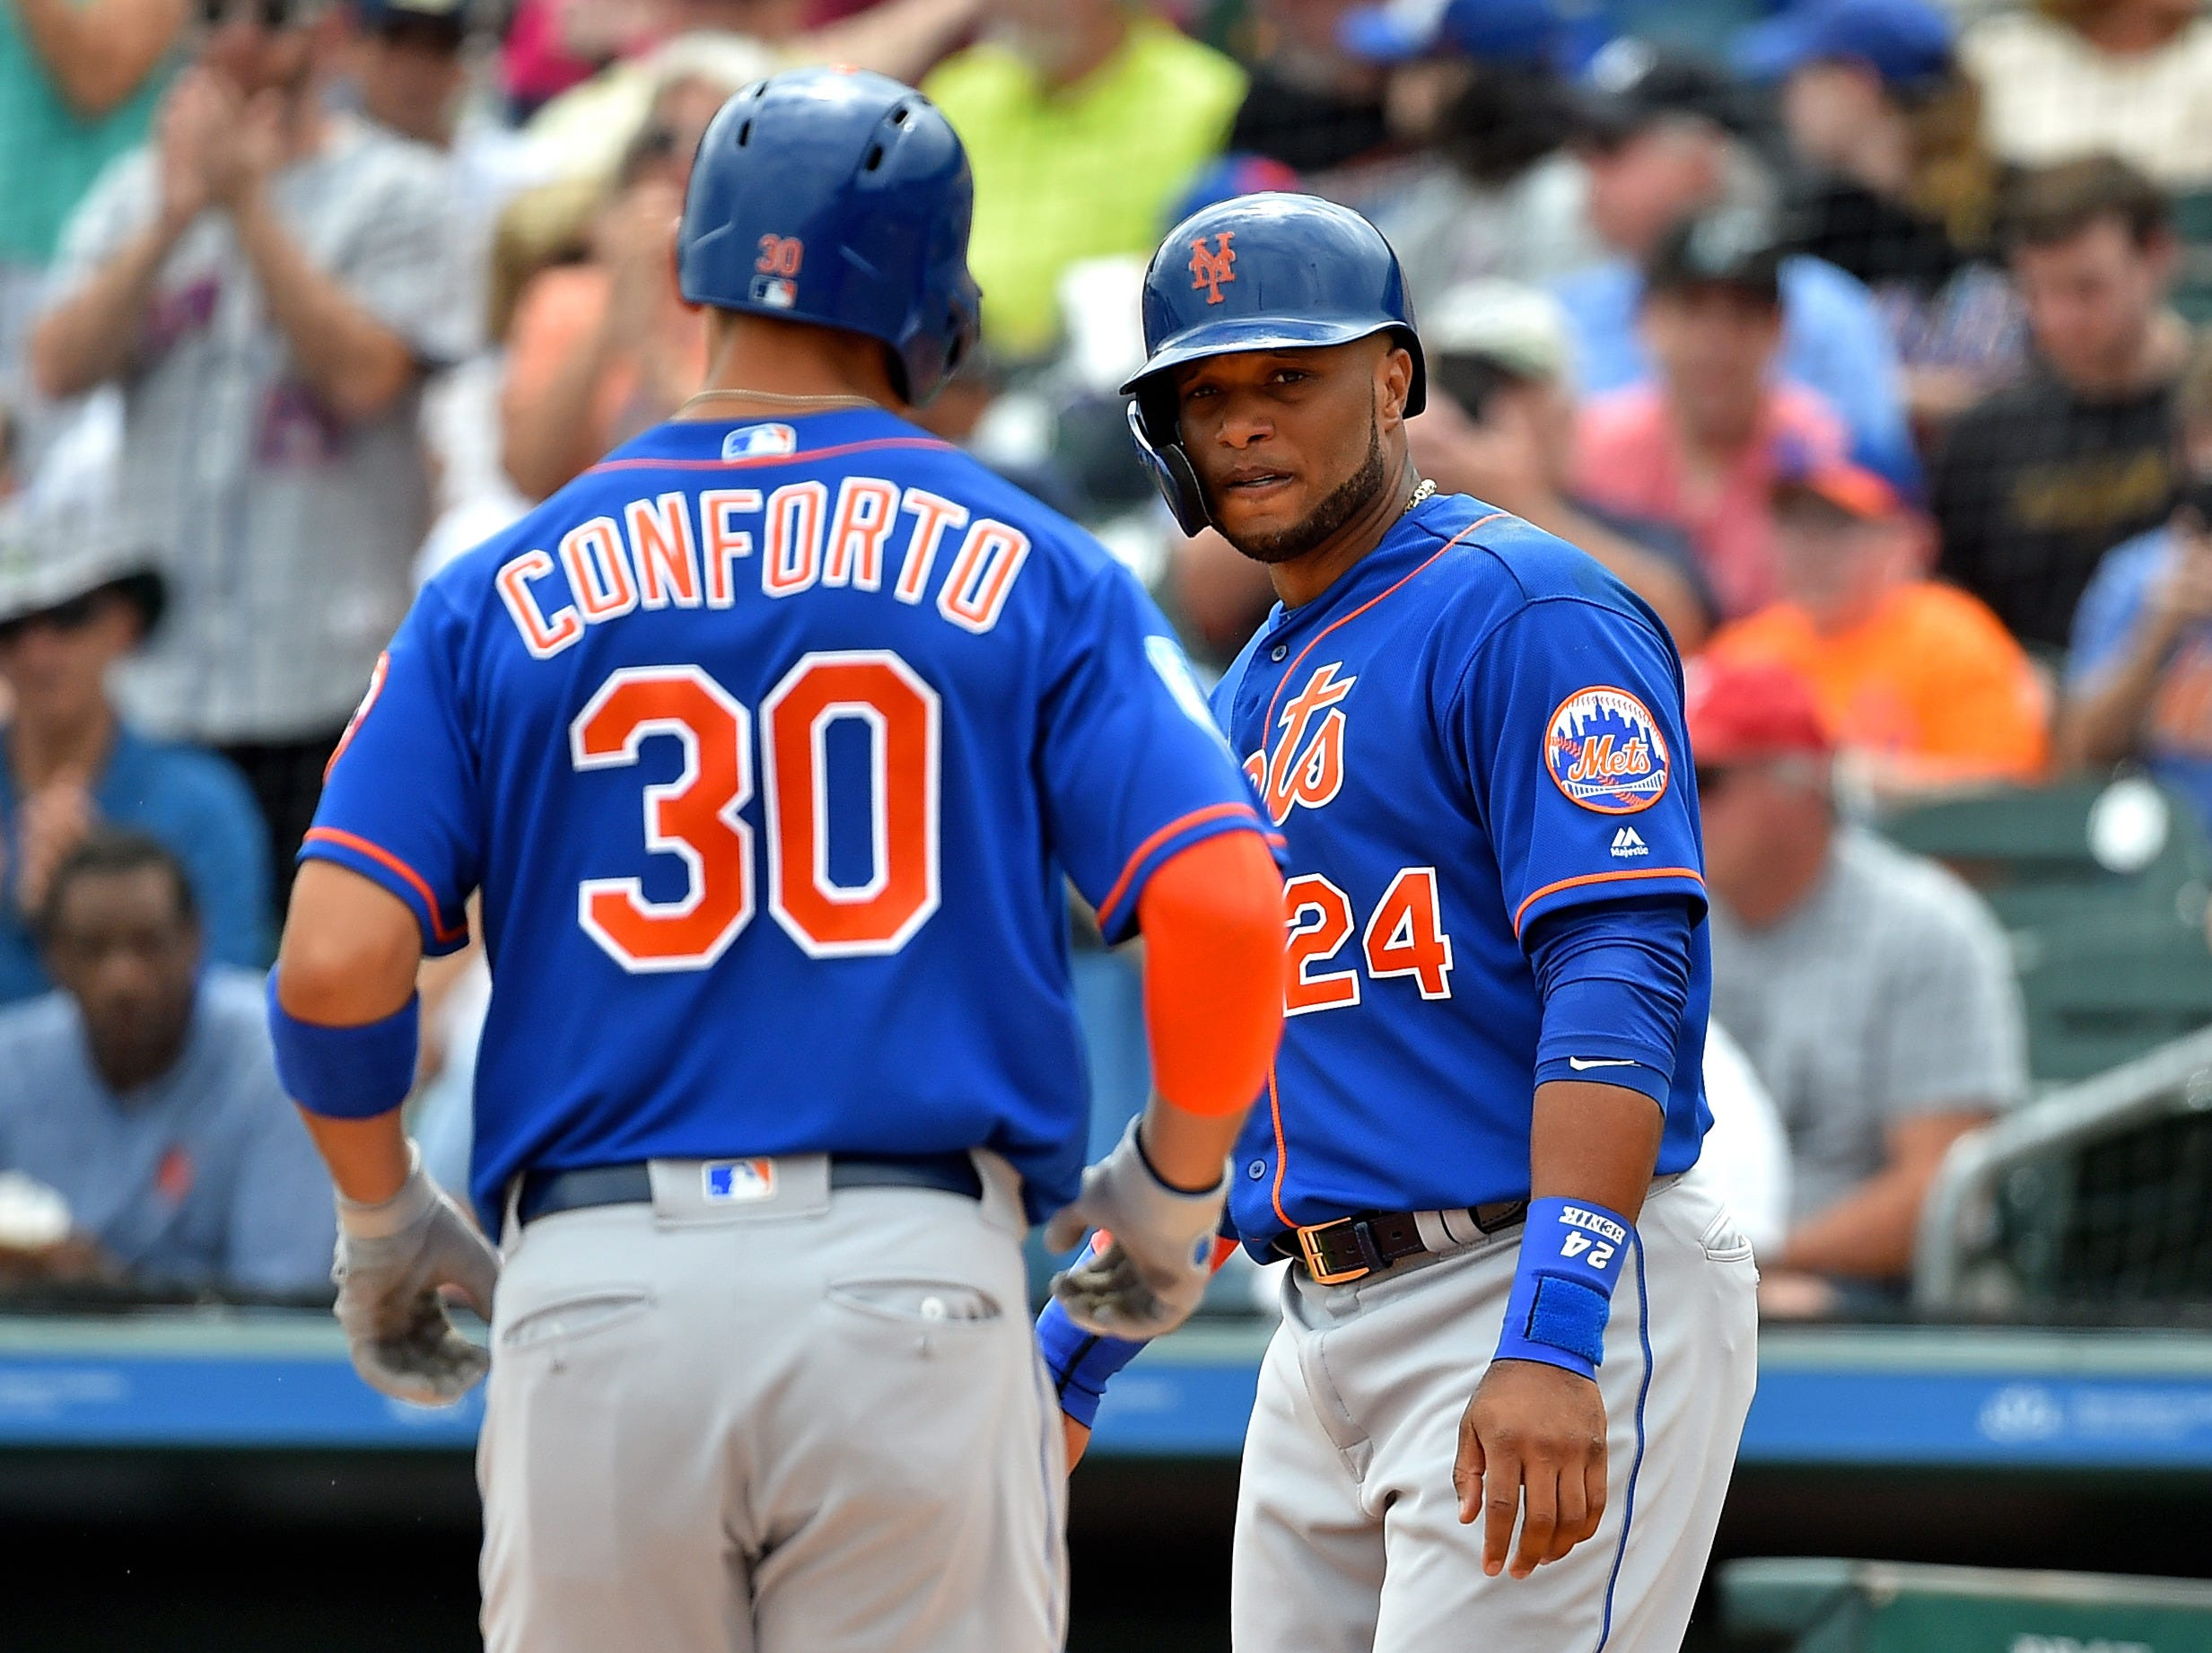 March 16: Robinson Cano celebrates with Michael Conforto after a two-run homer against the Marlins.